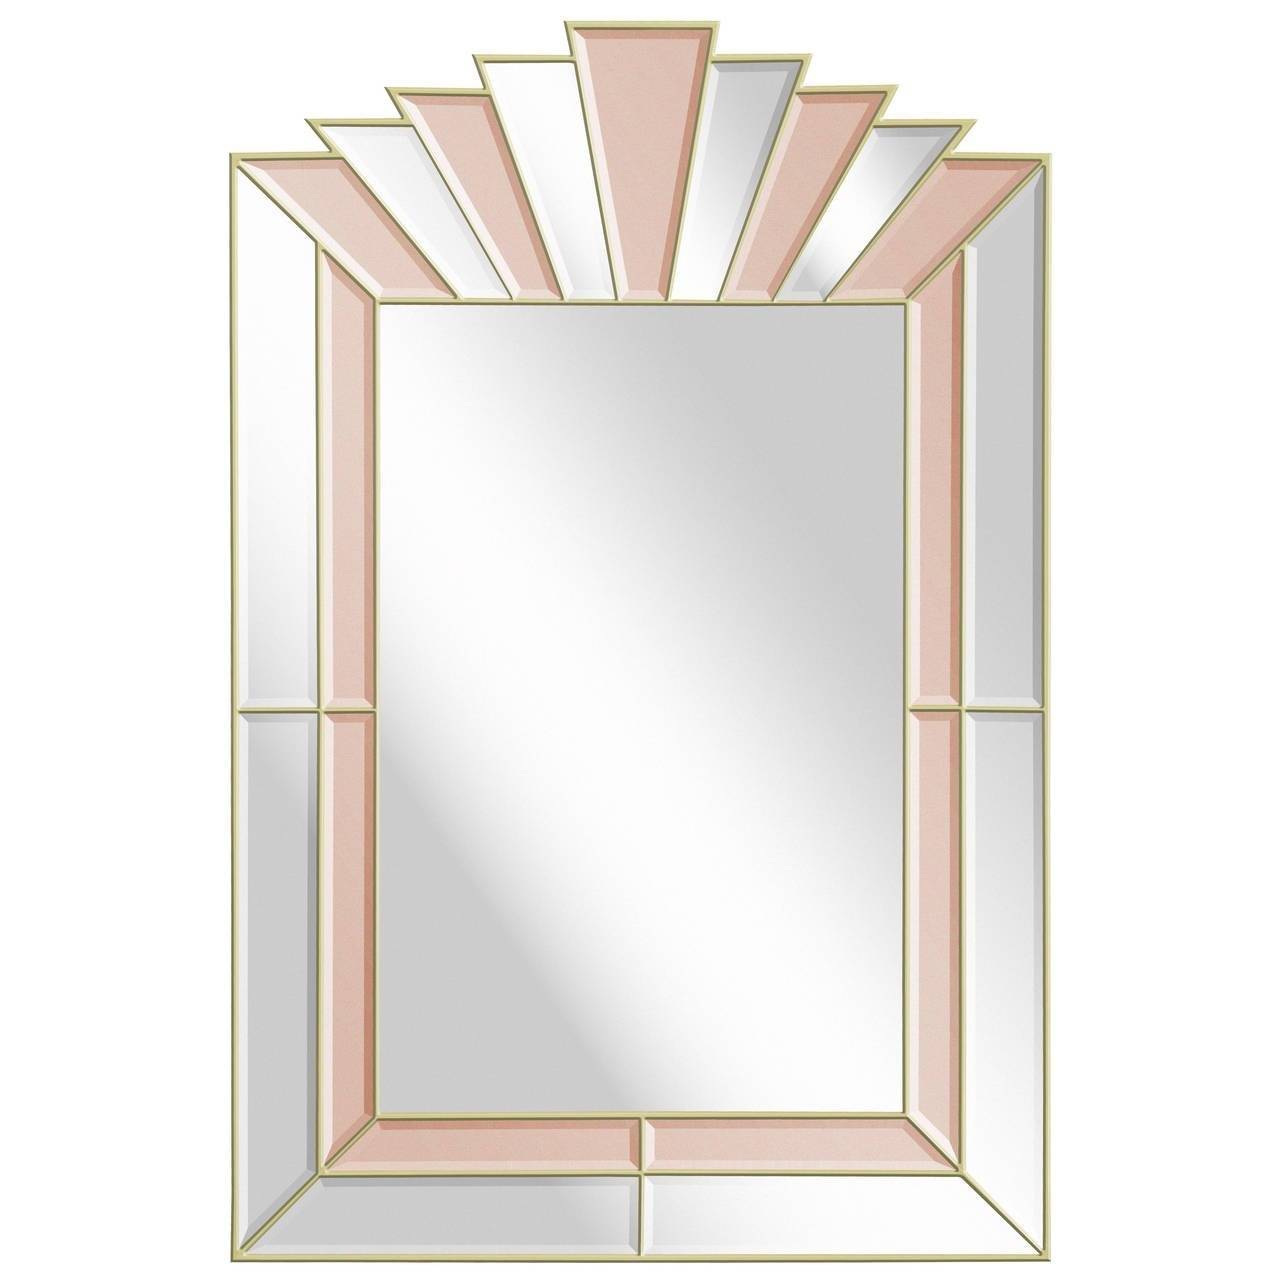 Art Deco Stile 25 Inspirations Of Art Deco Style Mirrors